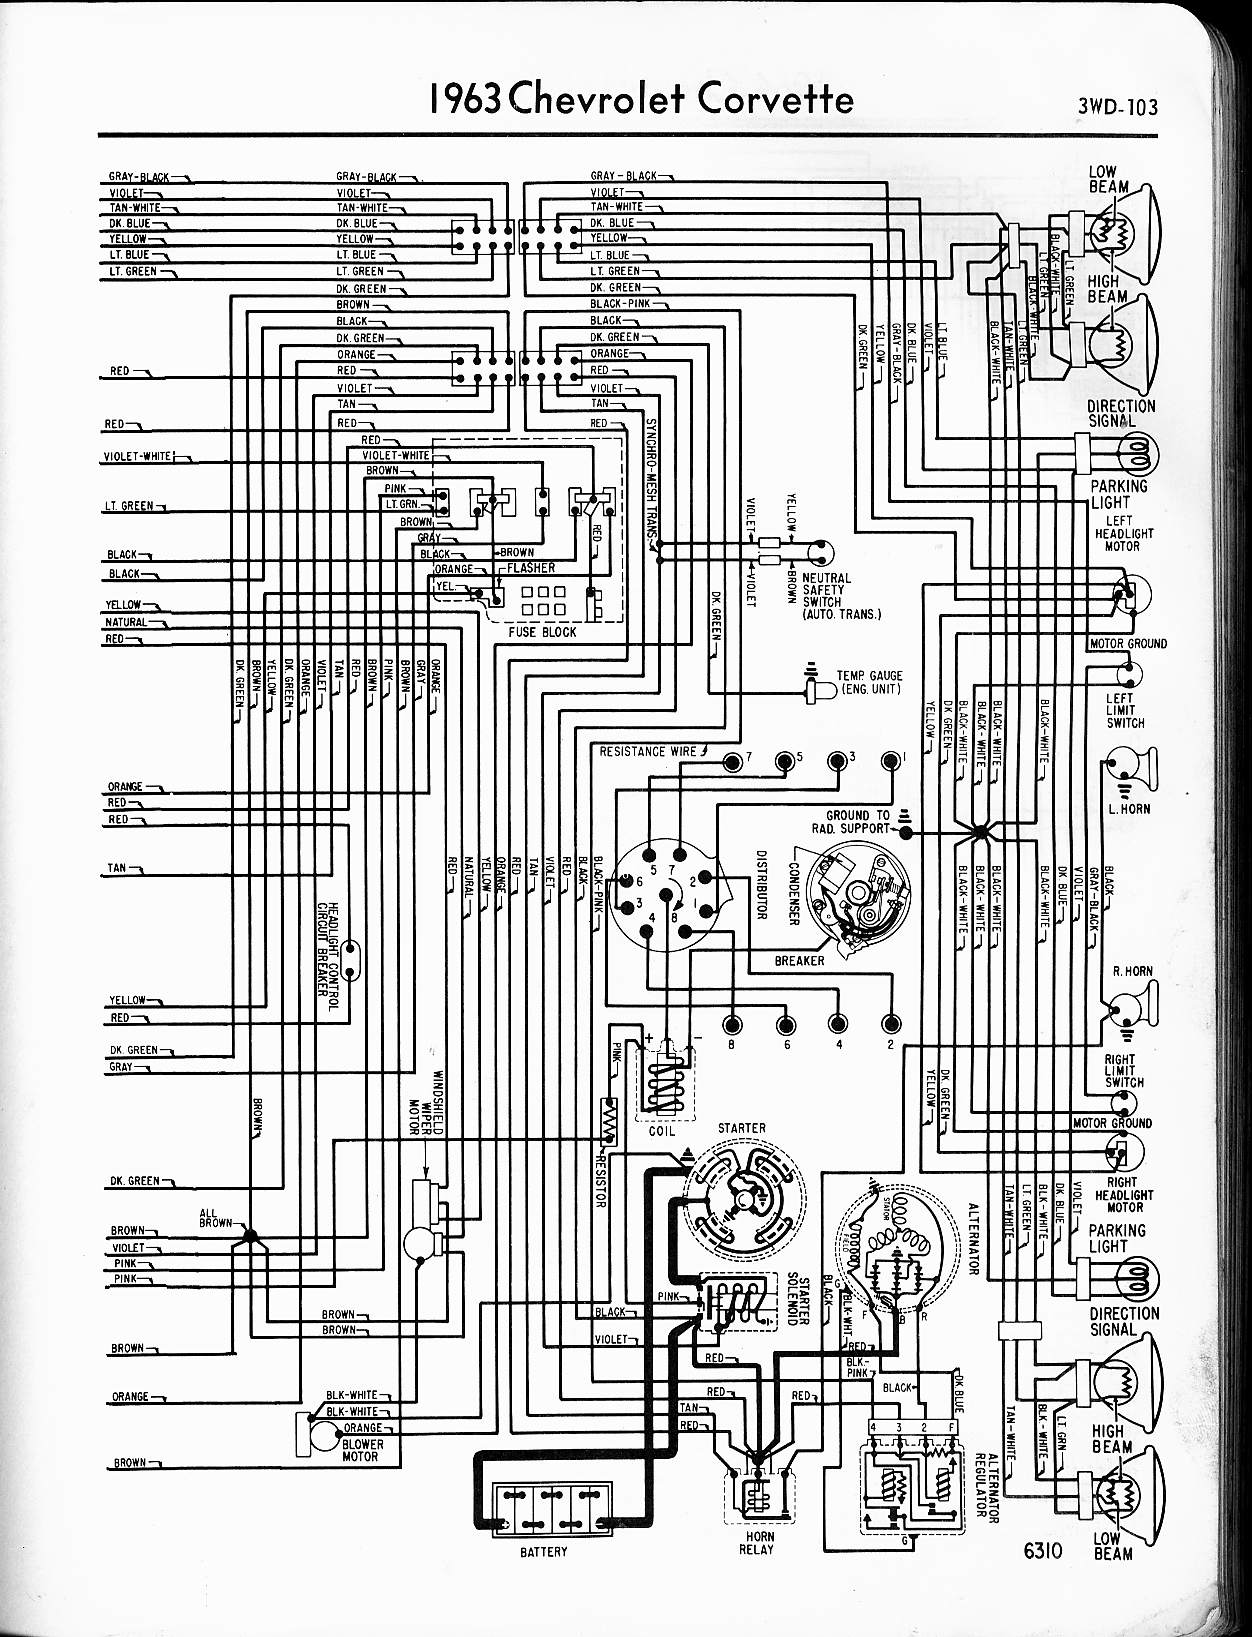 MWireChev63_3WD 103 57 65 chevy wiring diagrams 1963 chevrolet c10 wiring diagram at soozxer.org